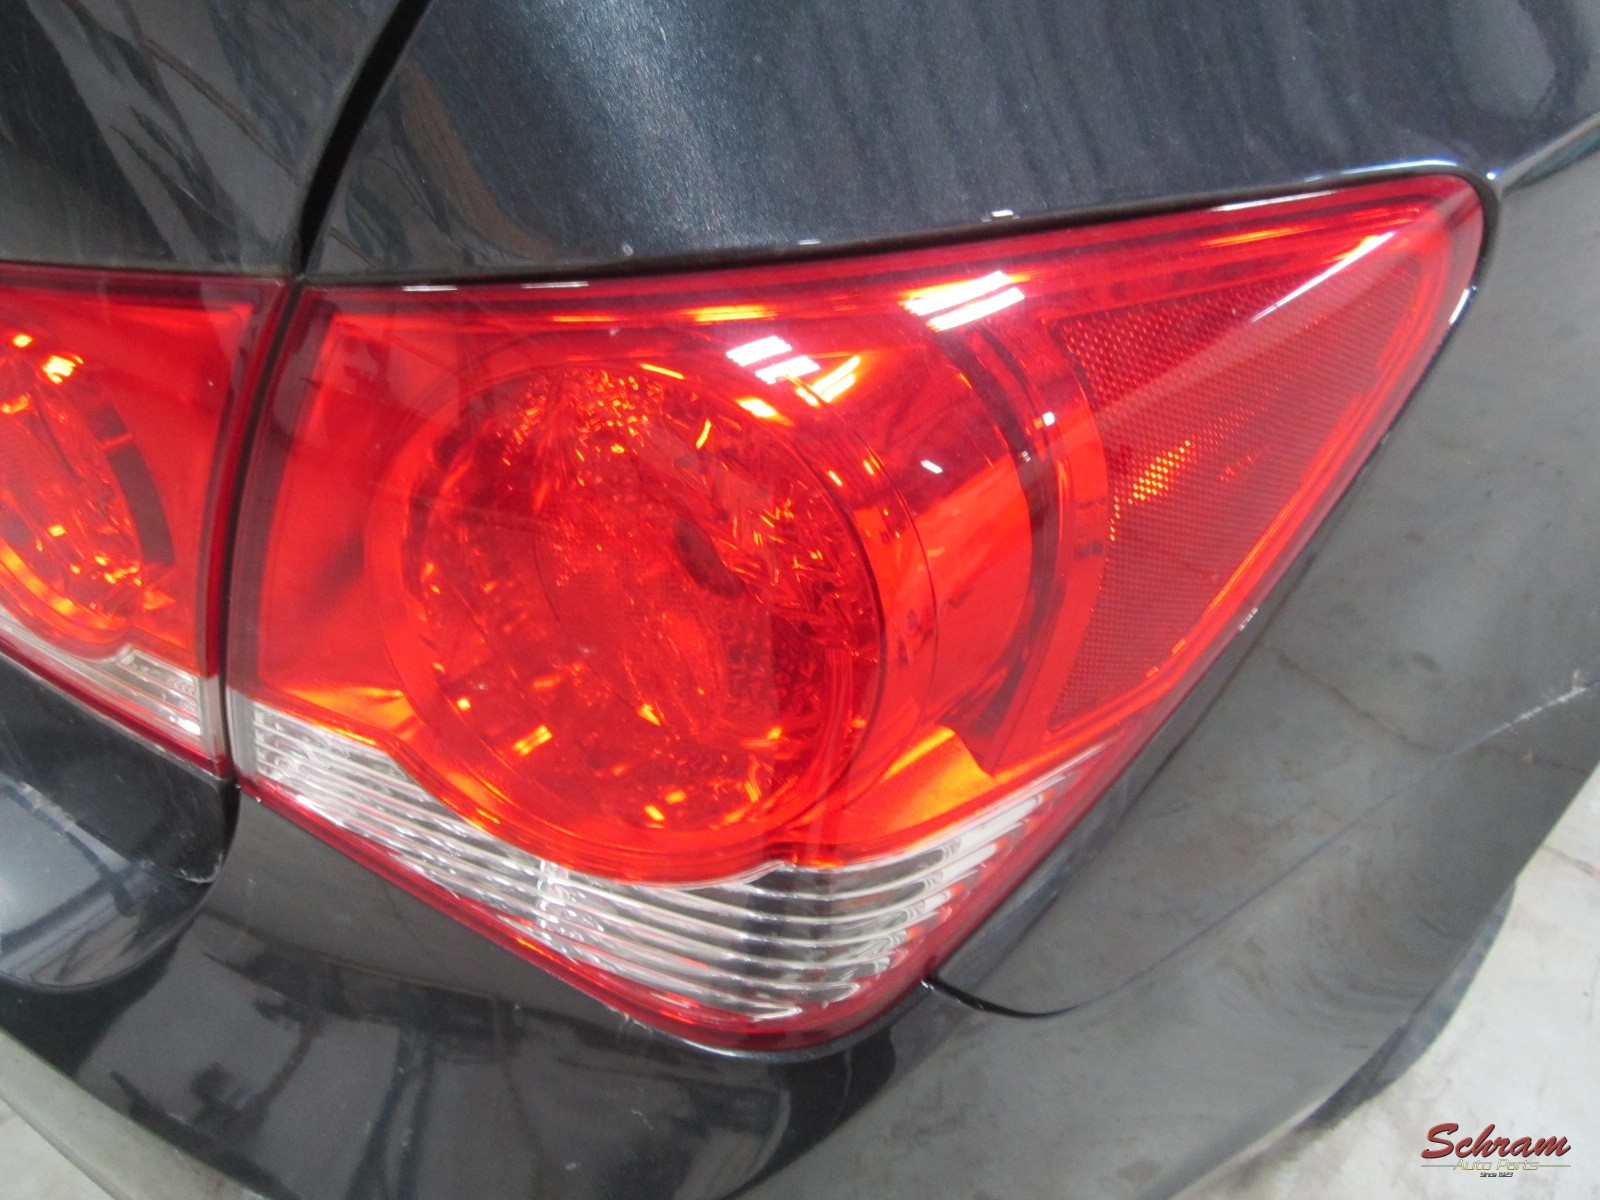 2013 CRUZE Tail Lamp R.